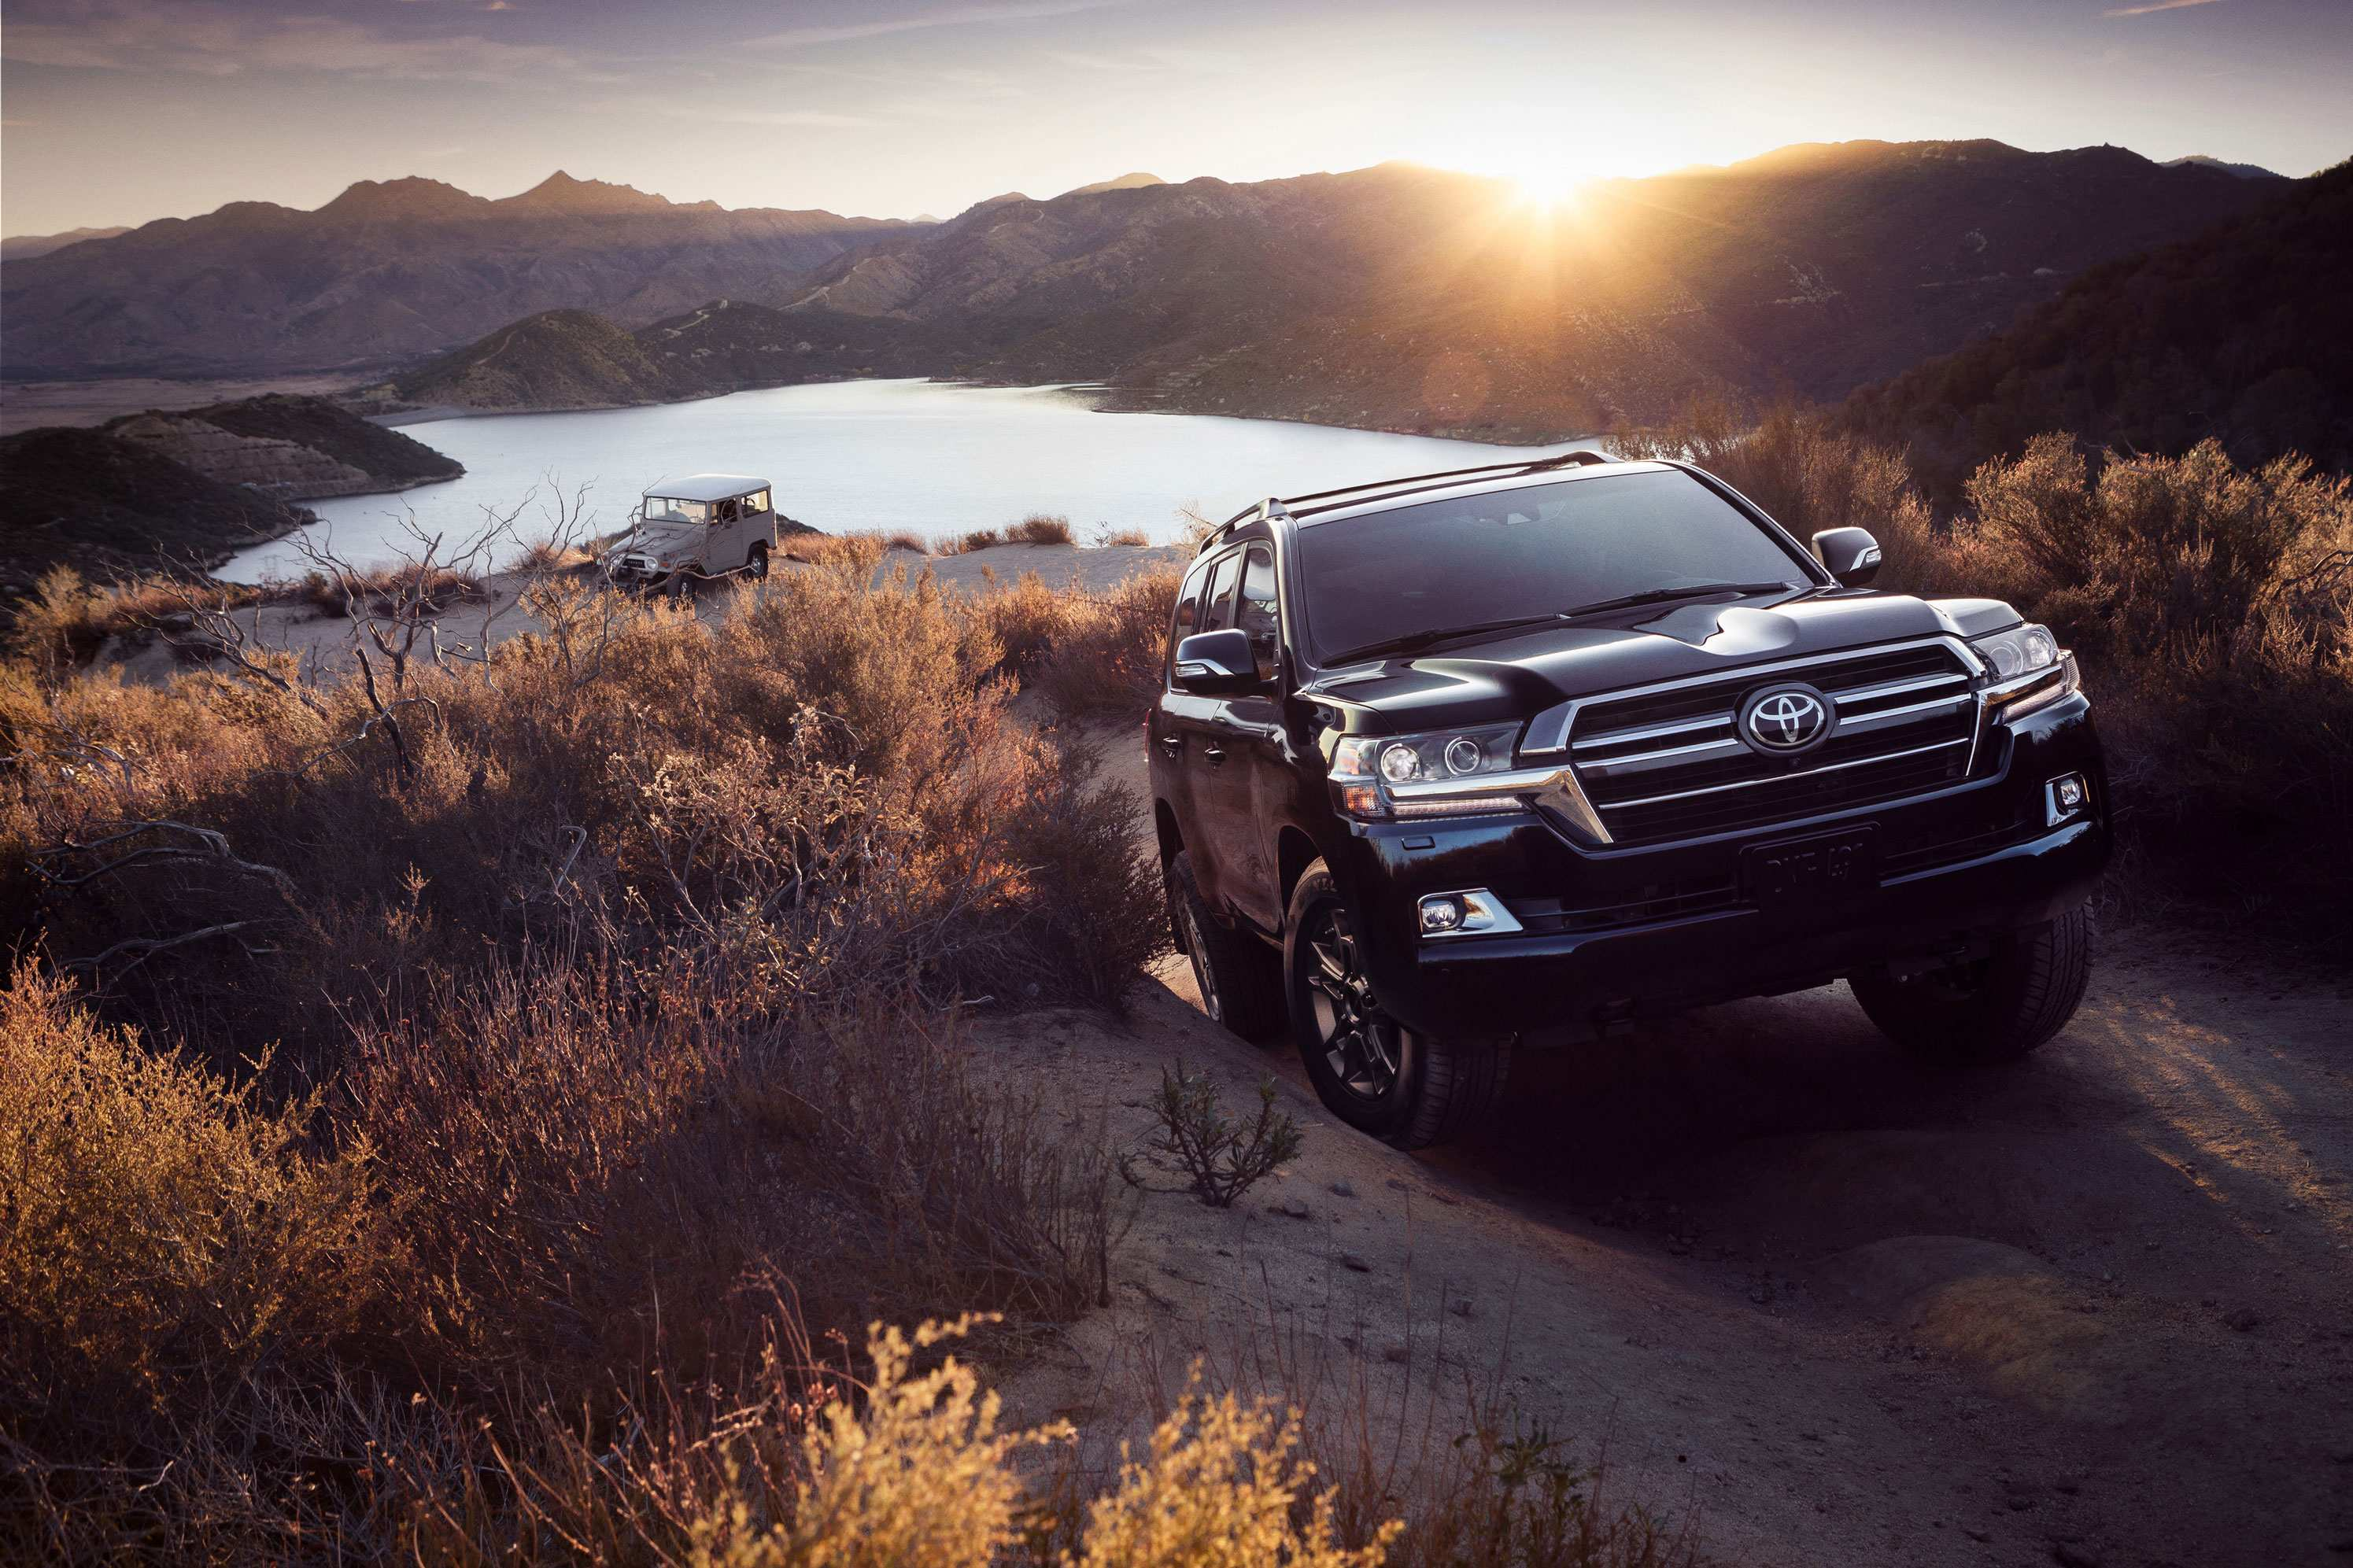 43 Great Toyota Land Cruiser 2020 Interior Release Date for Toyota Land Cruiser 2020 Interior